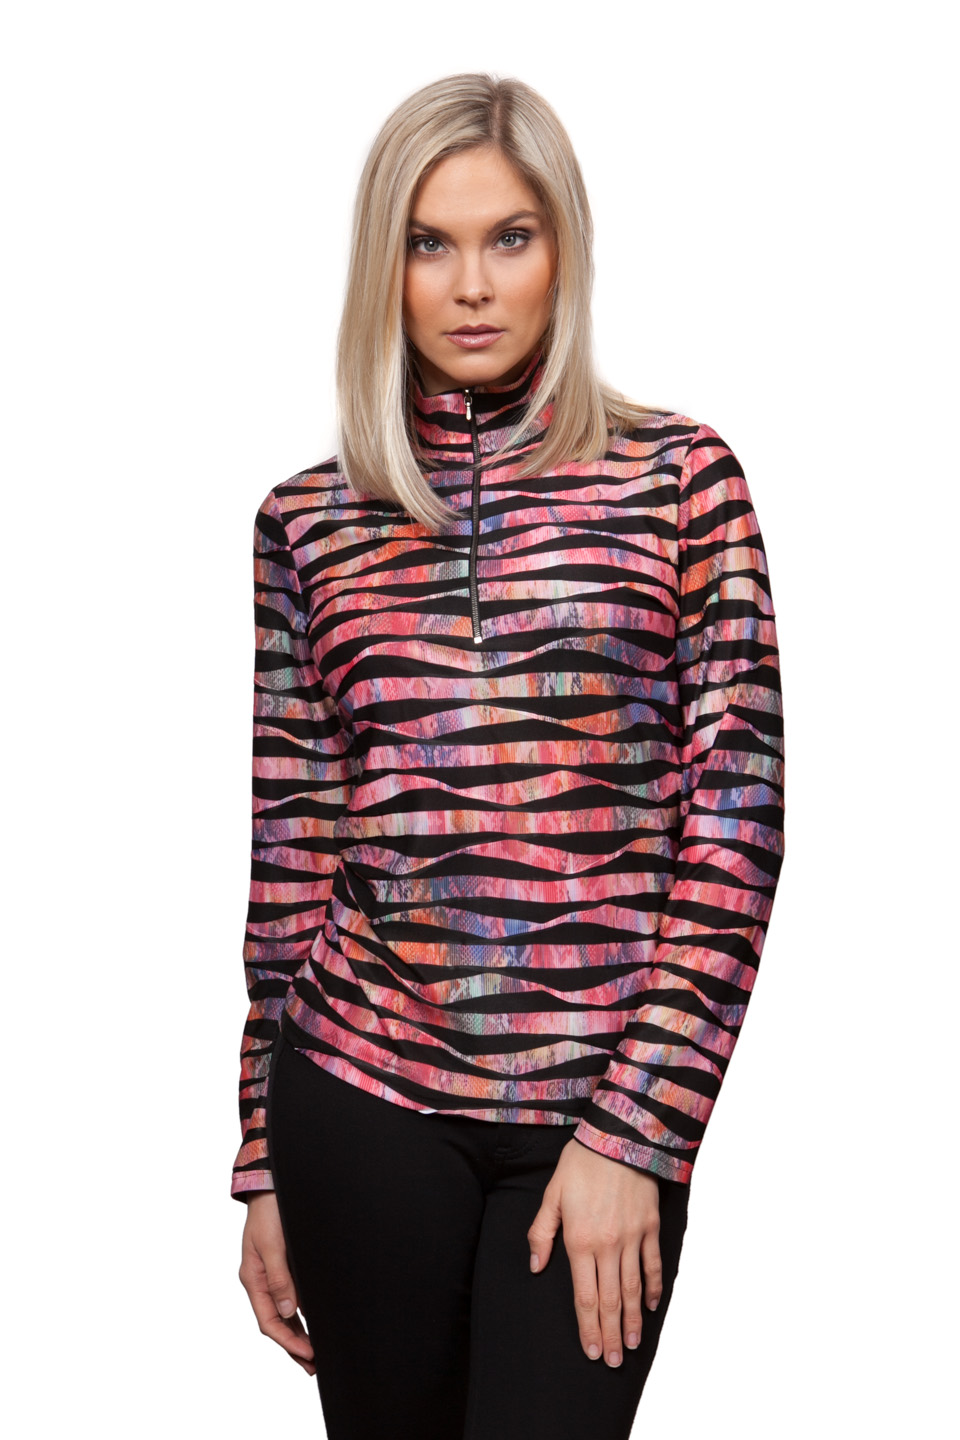 Copy of Style # 45287-16, p. 8<br>New Twisted Prints w/Bolder Stripe<br>Print: Cosmo, 4 patterns